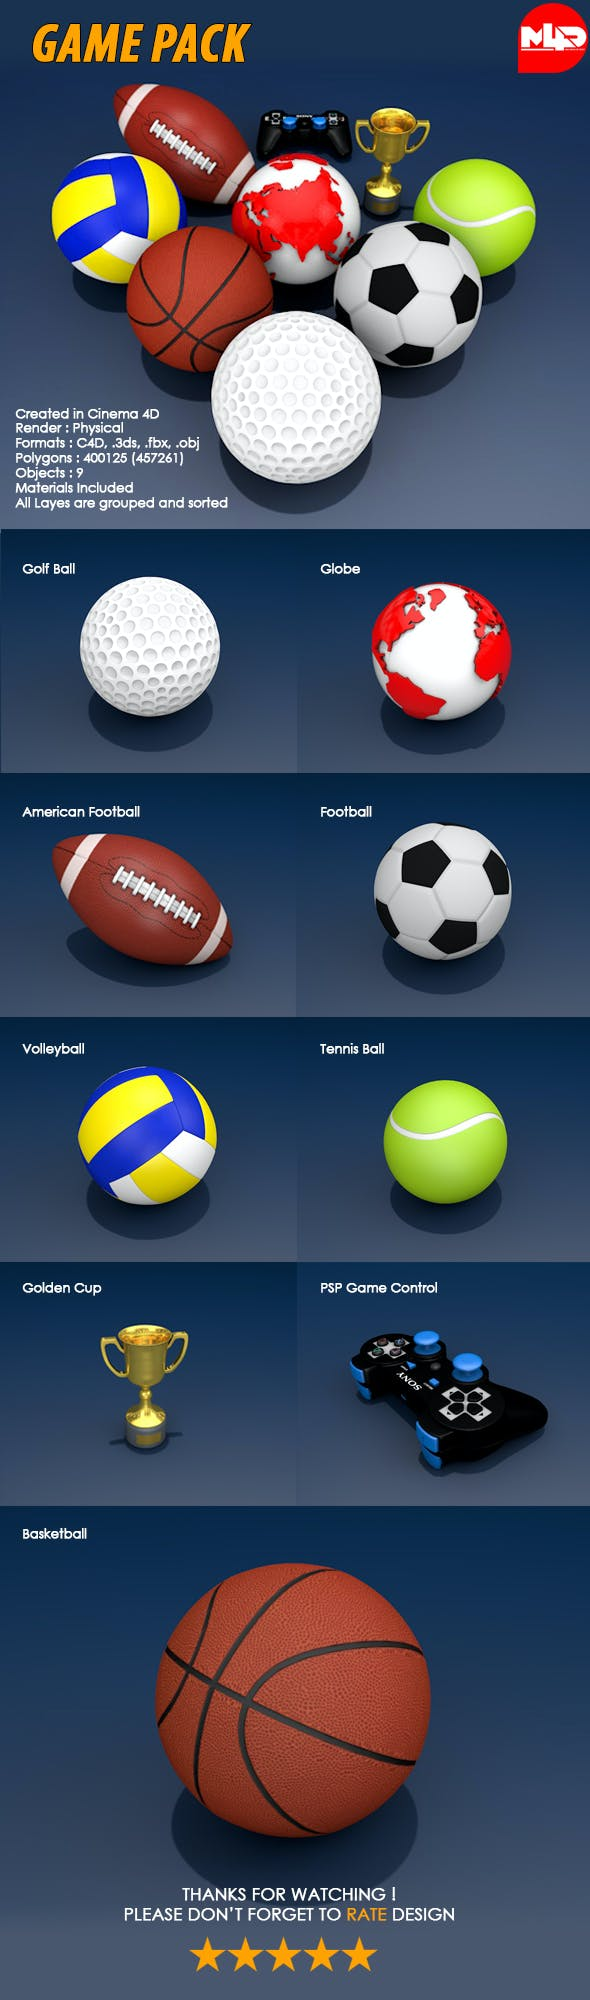 Sports Game Pack - 3DOcean Item for Sale